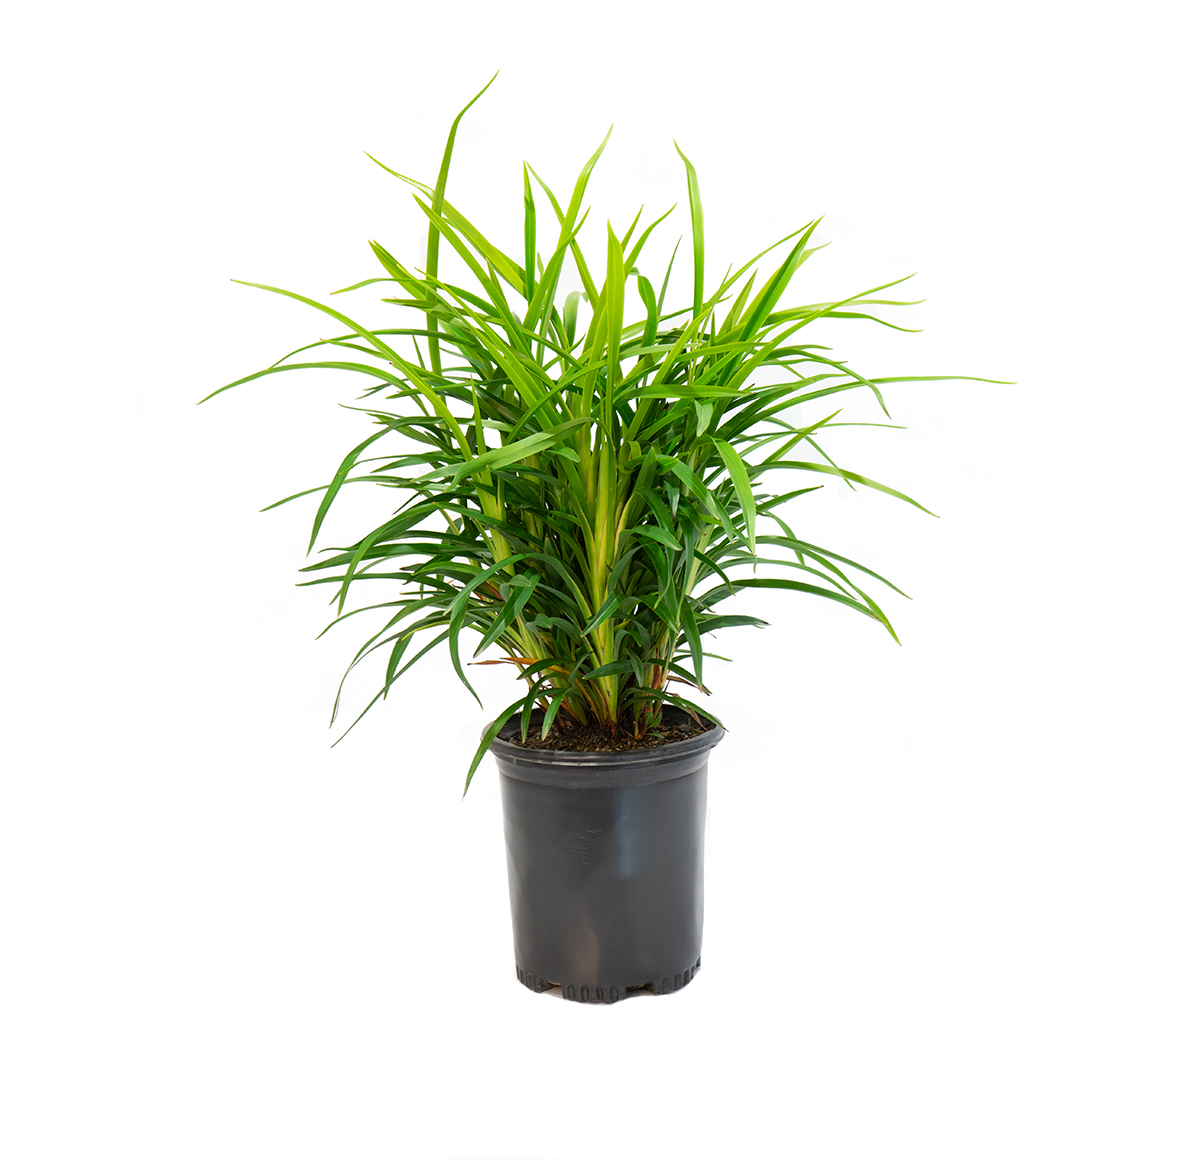 a single potted little Becca flax Lilly, will grow up to two feet tall with medium green strap like leaves